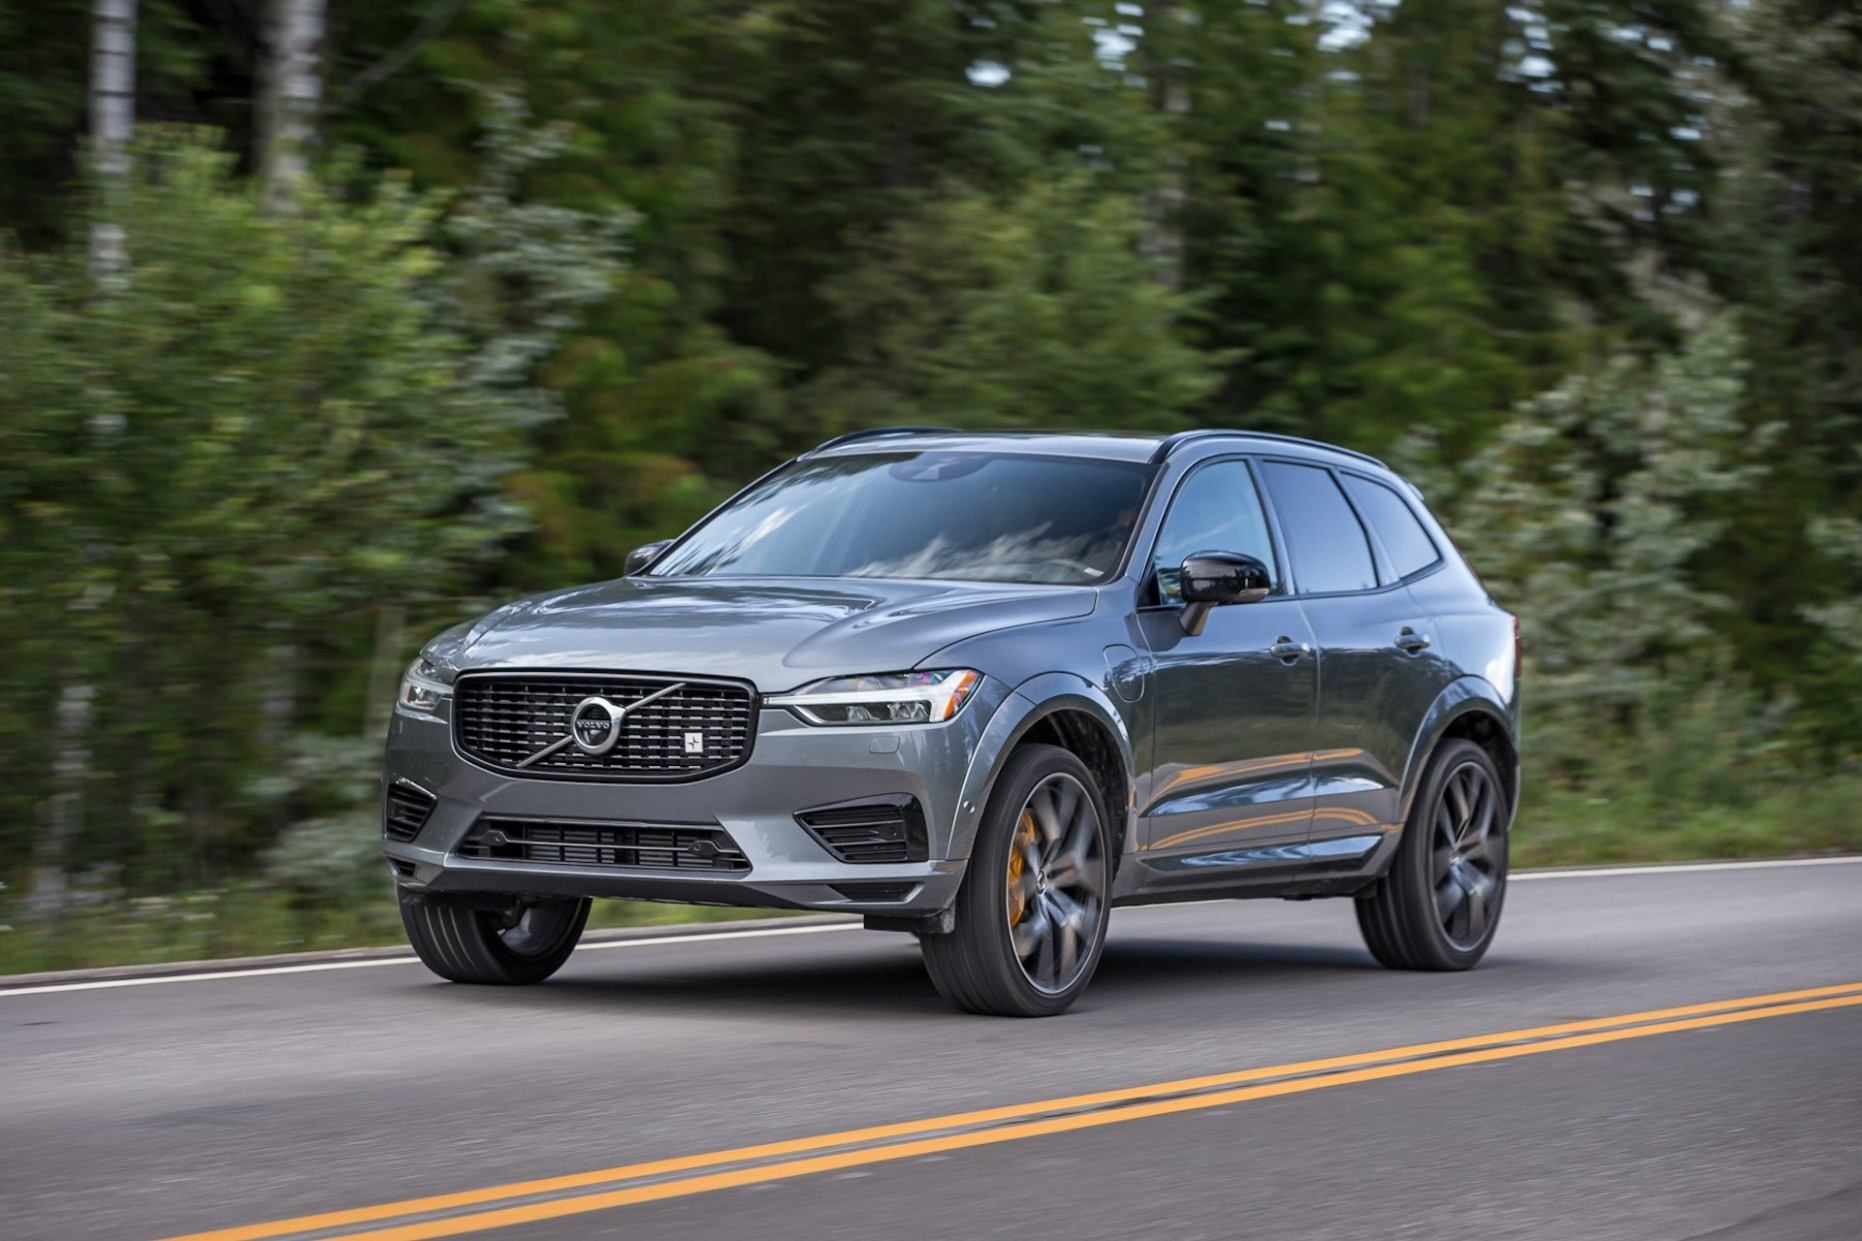 Volvo recalls all new models for faulty automatic emergency braking - jaguar recall 2020